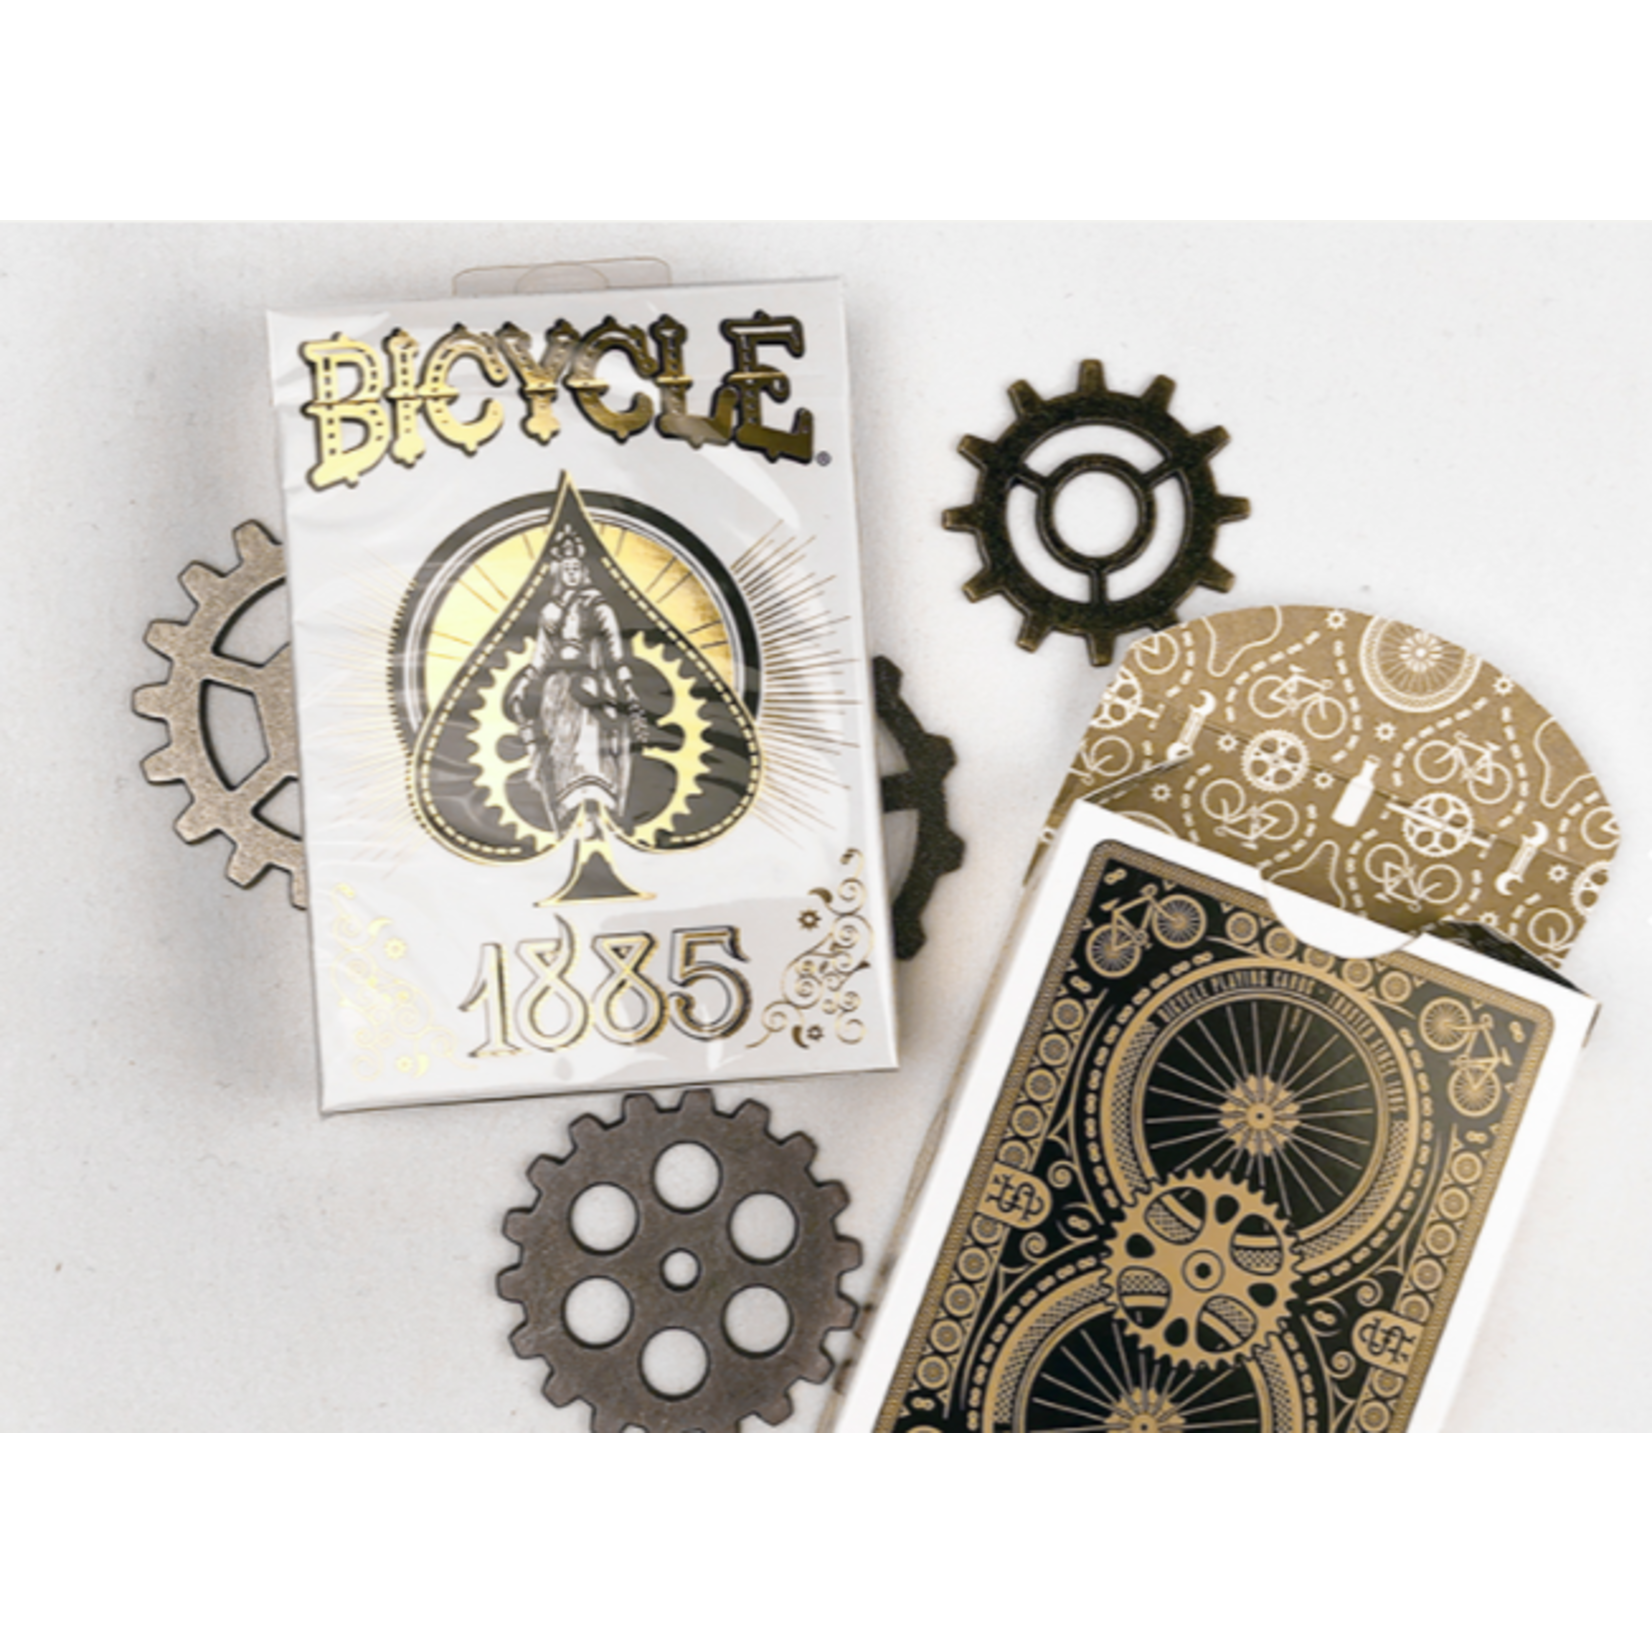 Bicycle Bicycle Playing Cards: 1885